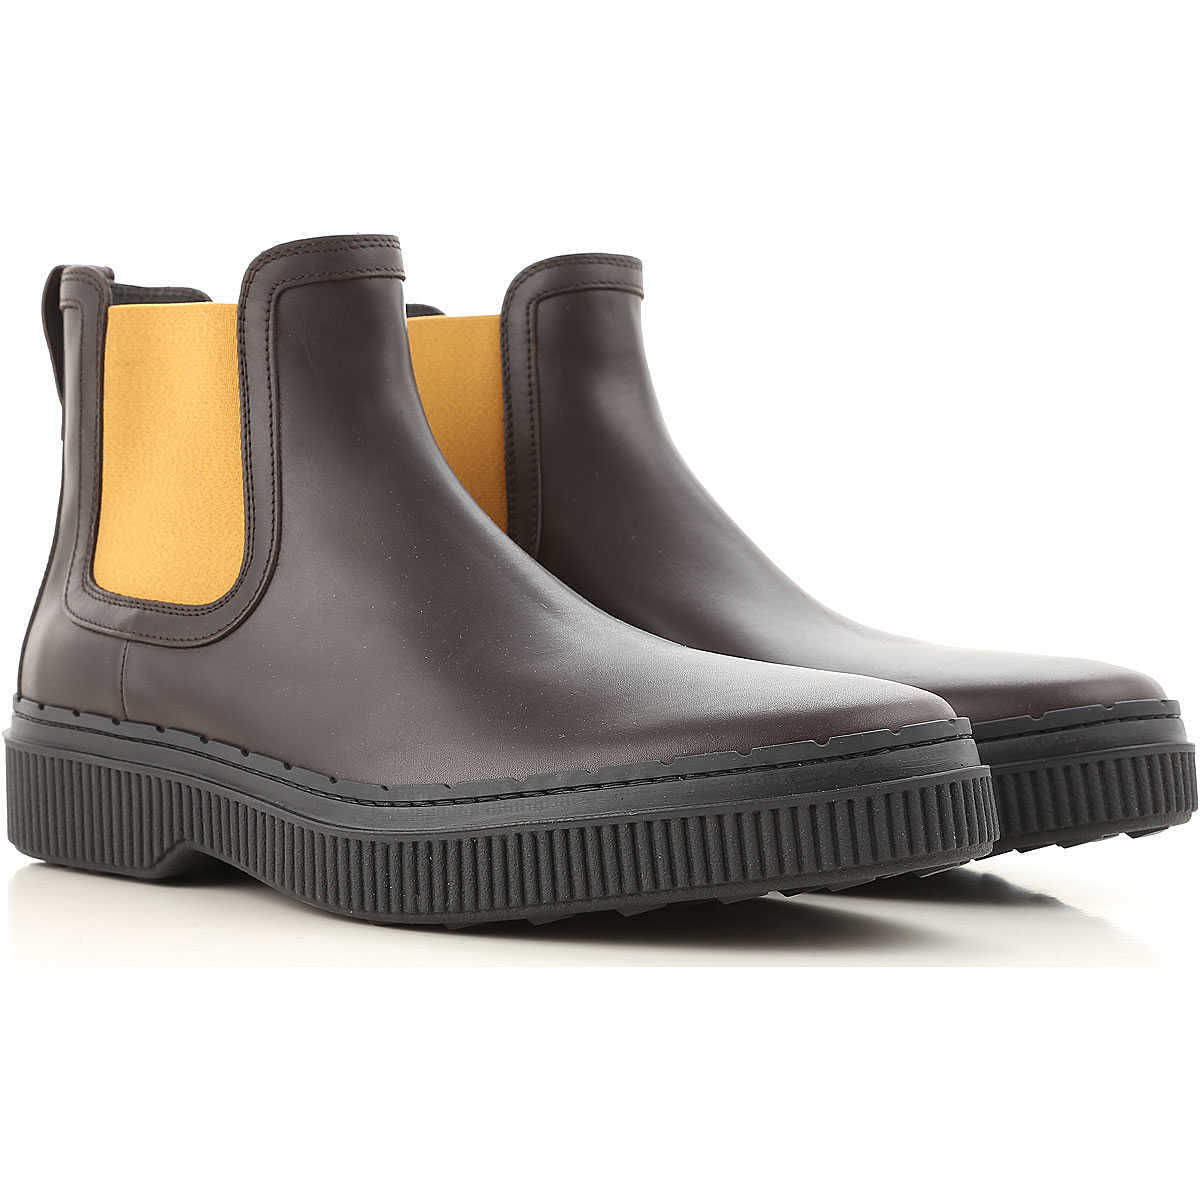 Tods Chelsea Boots for Men On Sale Dark Brown DK - GOOFASH - Mens BOOTS